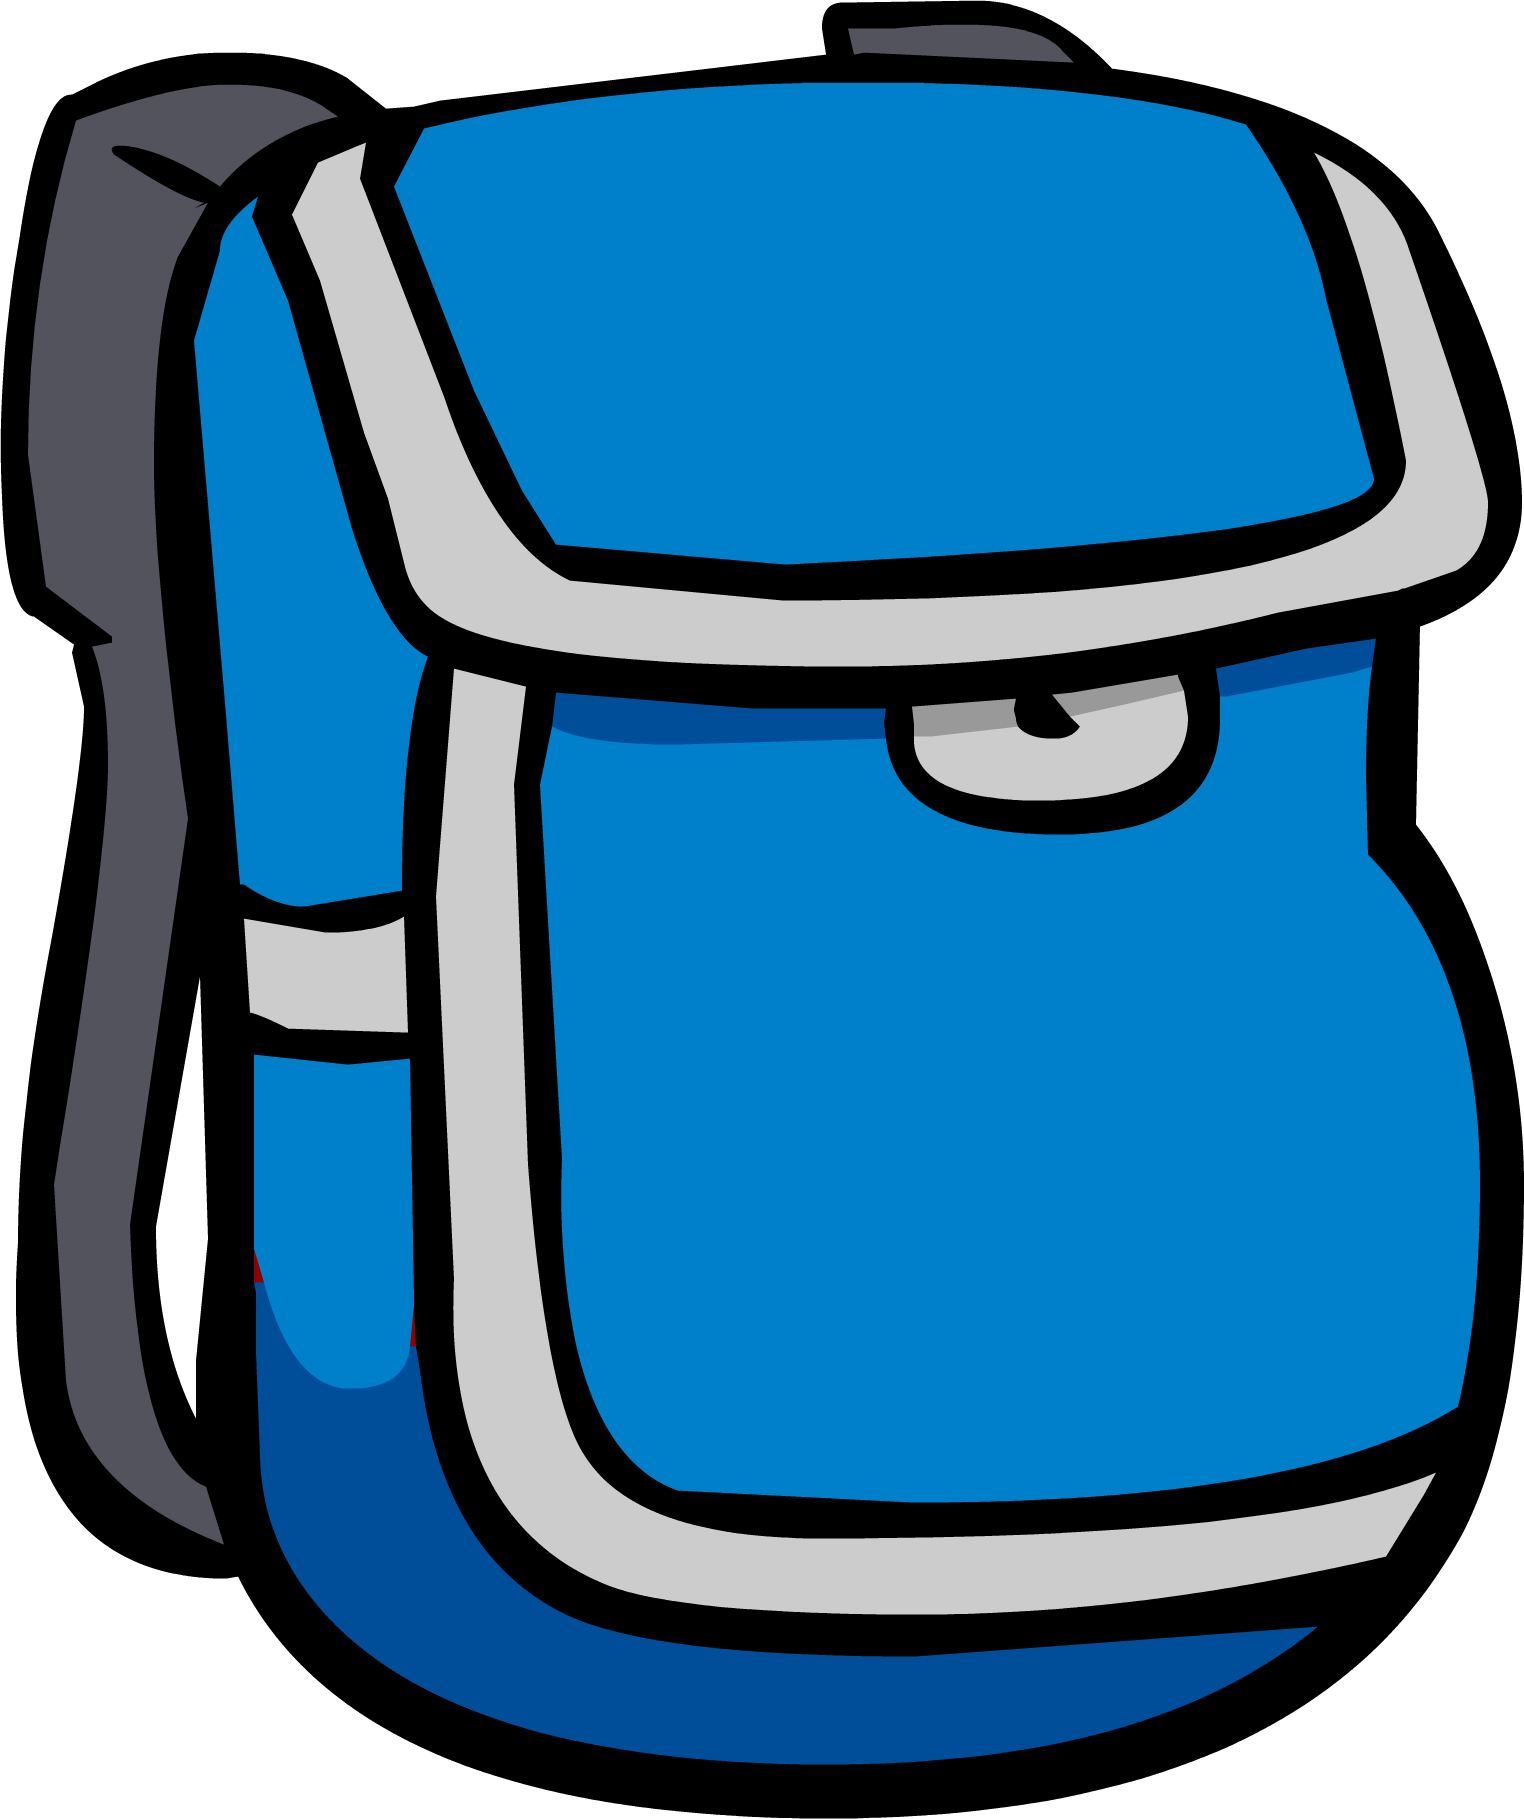 Image icon png club. Clipart backpack blue bag